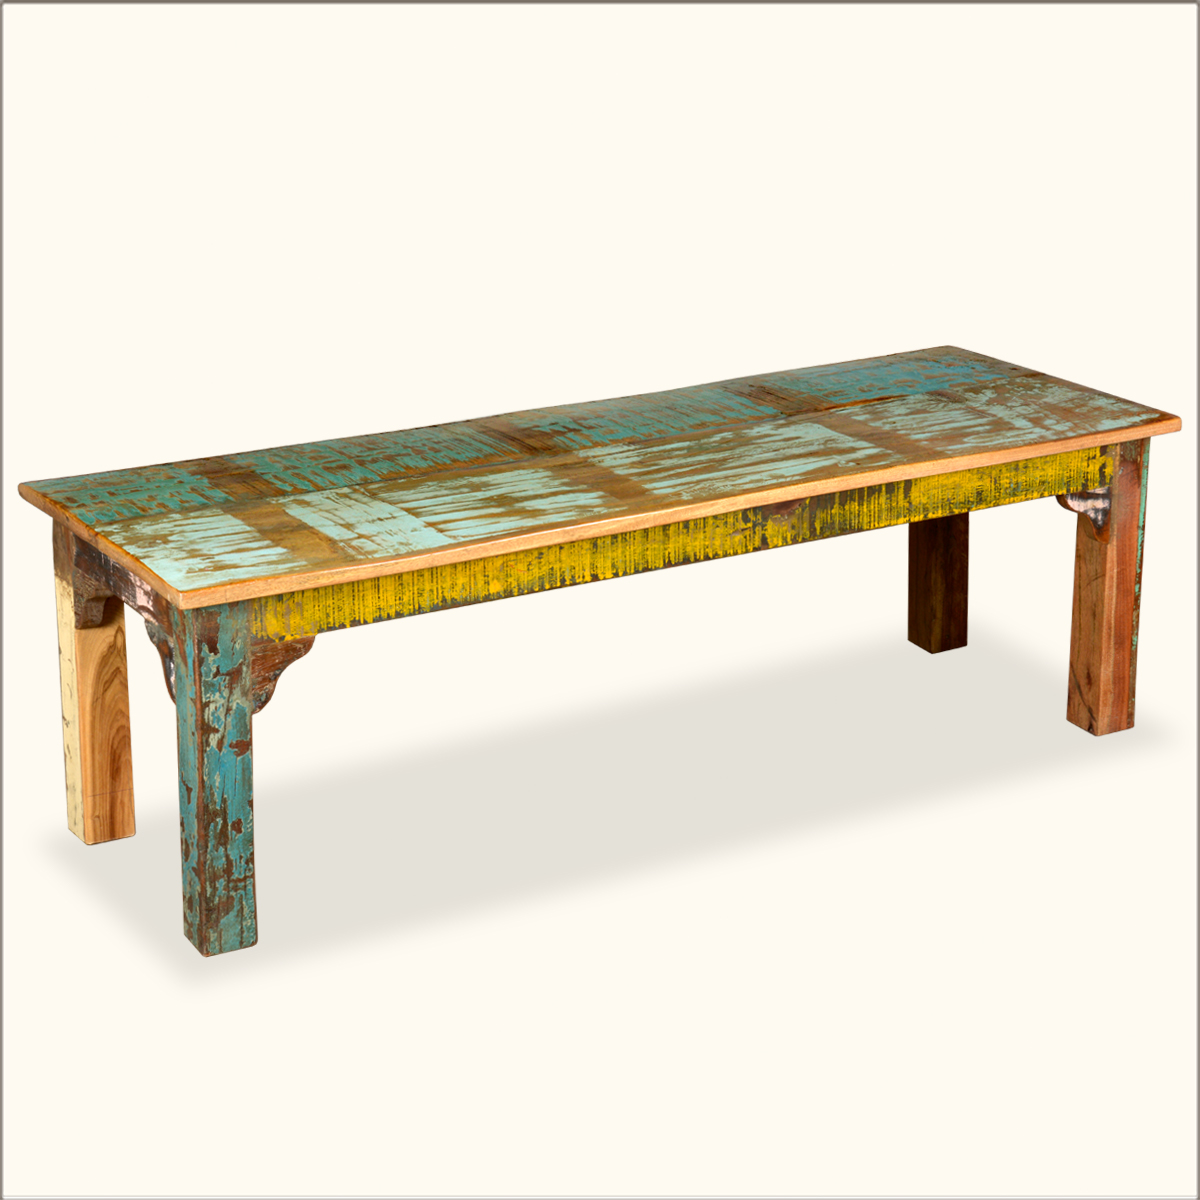 Reclaimed Wood Rustic Indoor Outdoor Patio Bench Seat Furniture Ebay